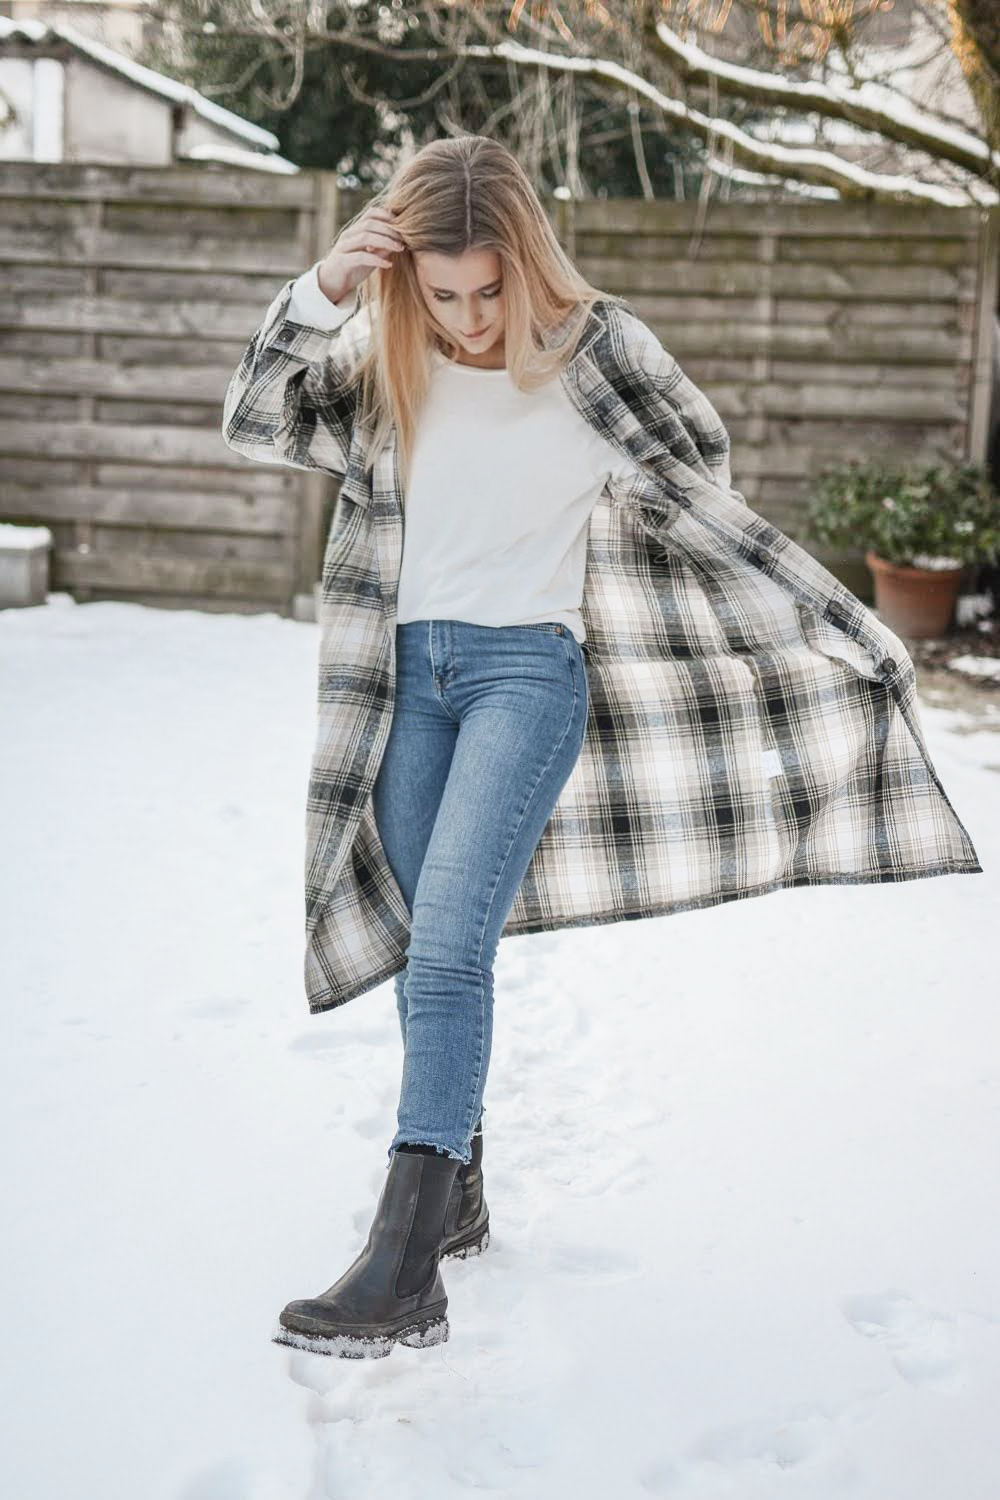 Outfit: Winter of Lente?